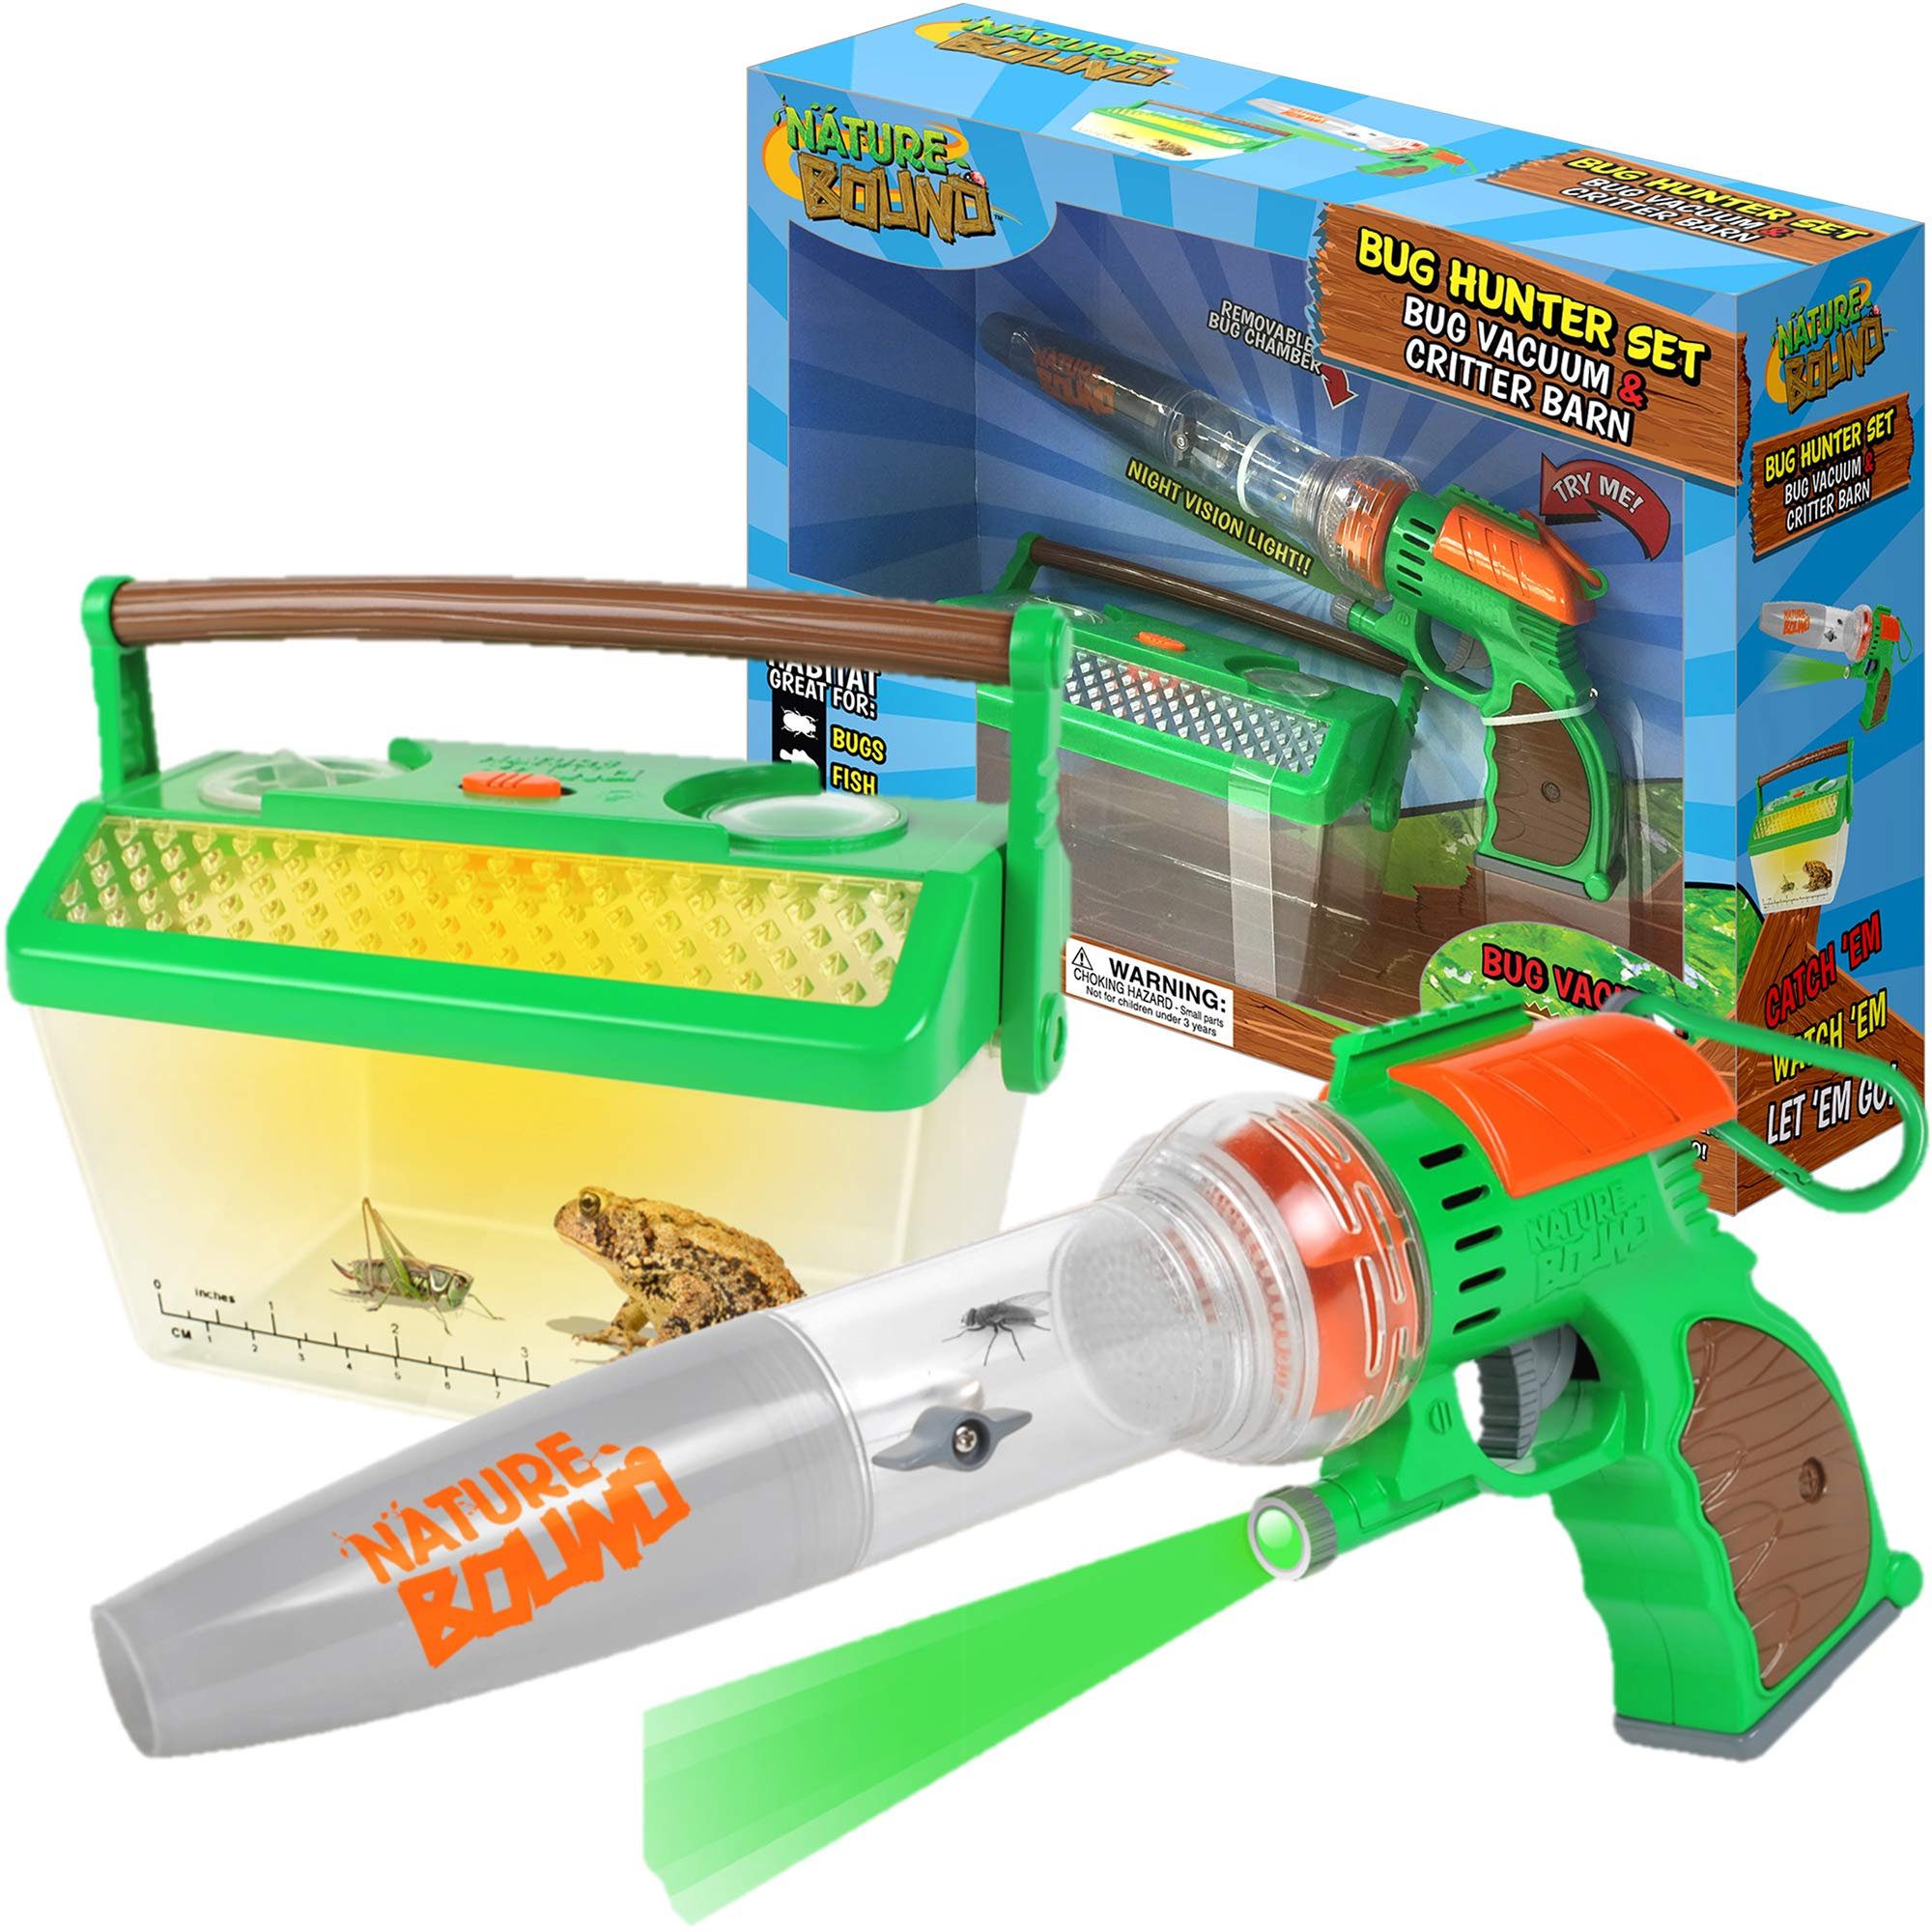 Nature Bound Bug Catcher Vacuum with Light Up Critter Habitat Case for Backyard Exploration - Complete kit for Kids by Nature Bound